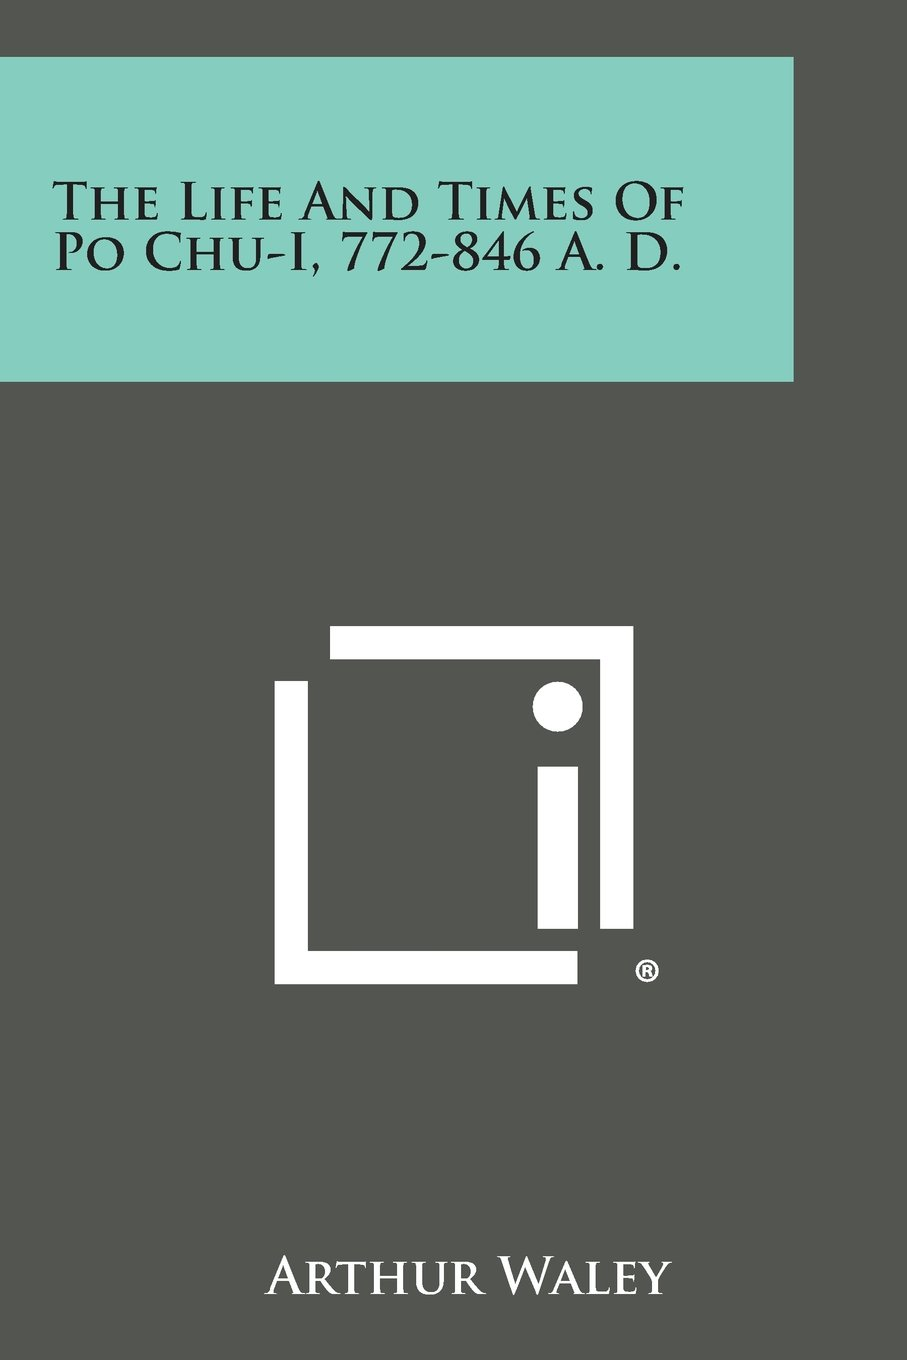 The Life and Times of Po Chu-I, 772-846 A. D.